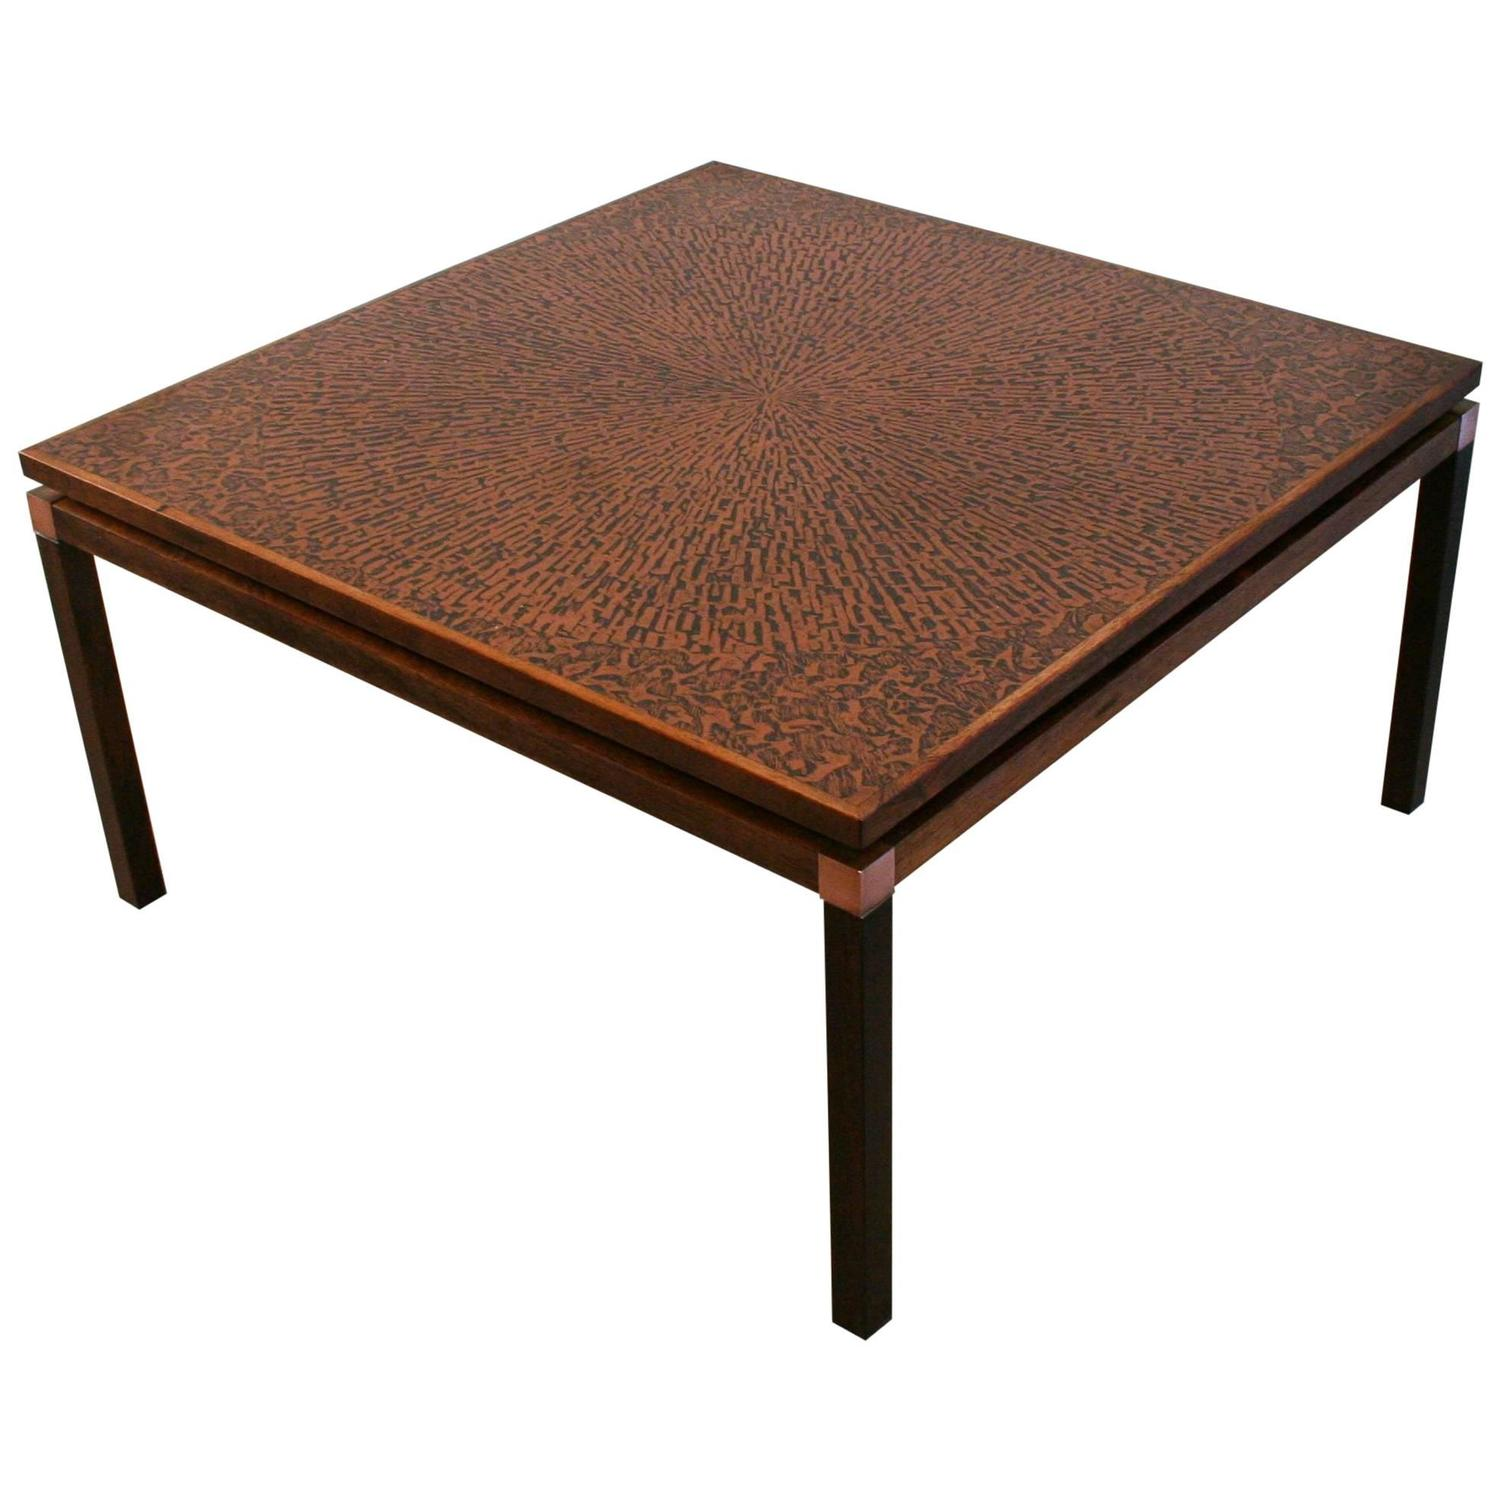 Vintage Danish Copper And Rosewood Coffee Table At 1stdibs